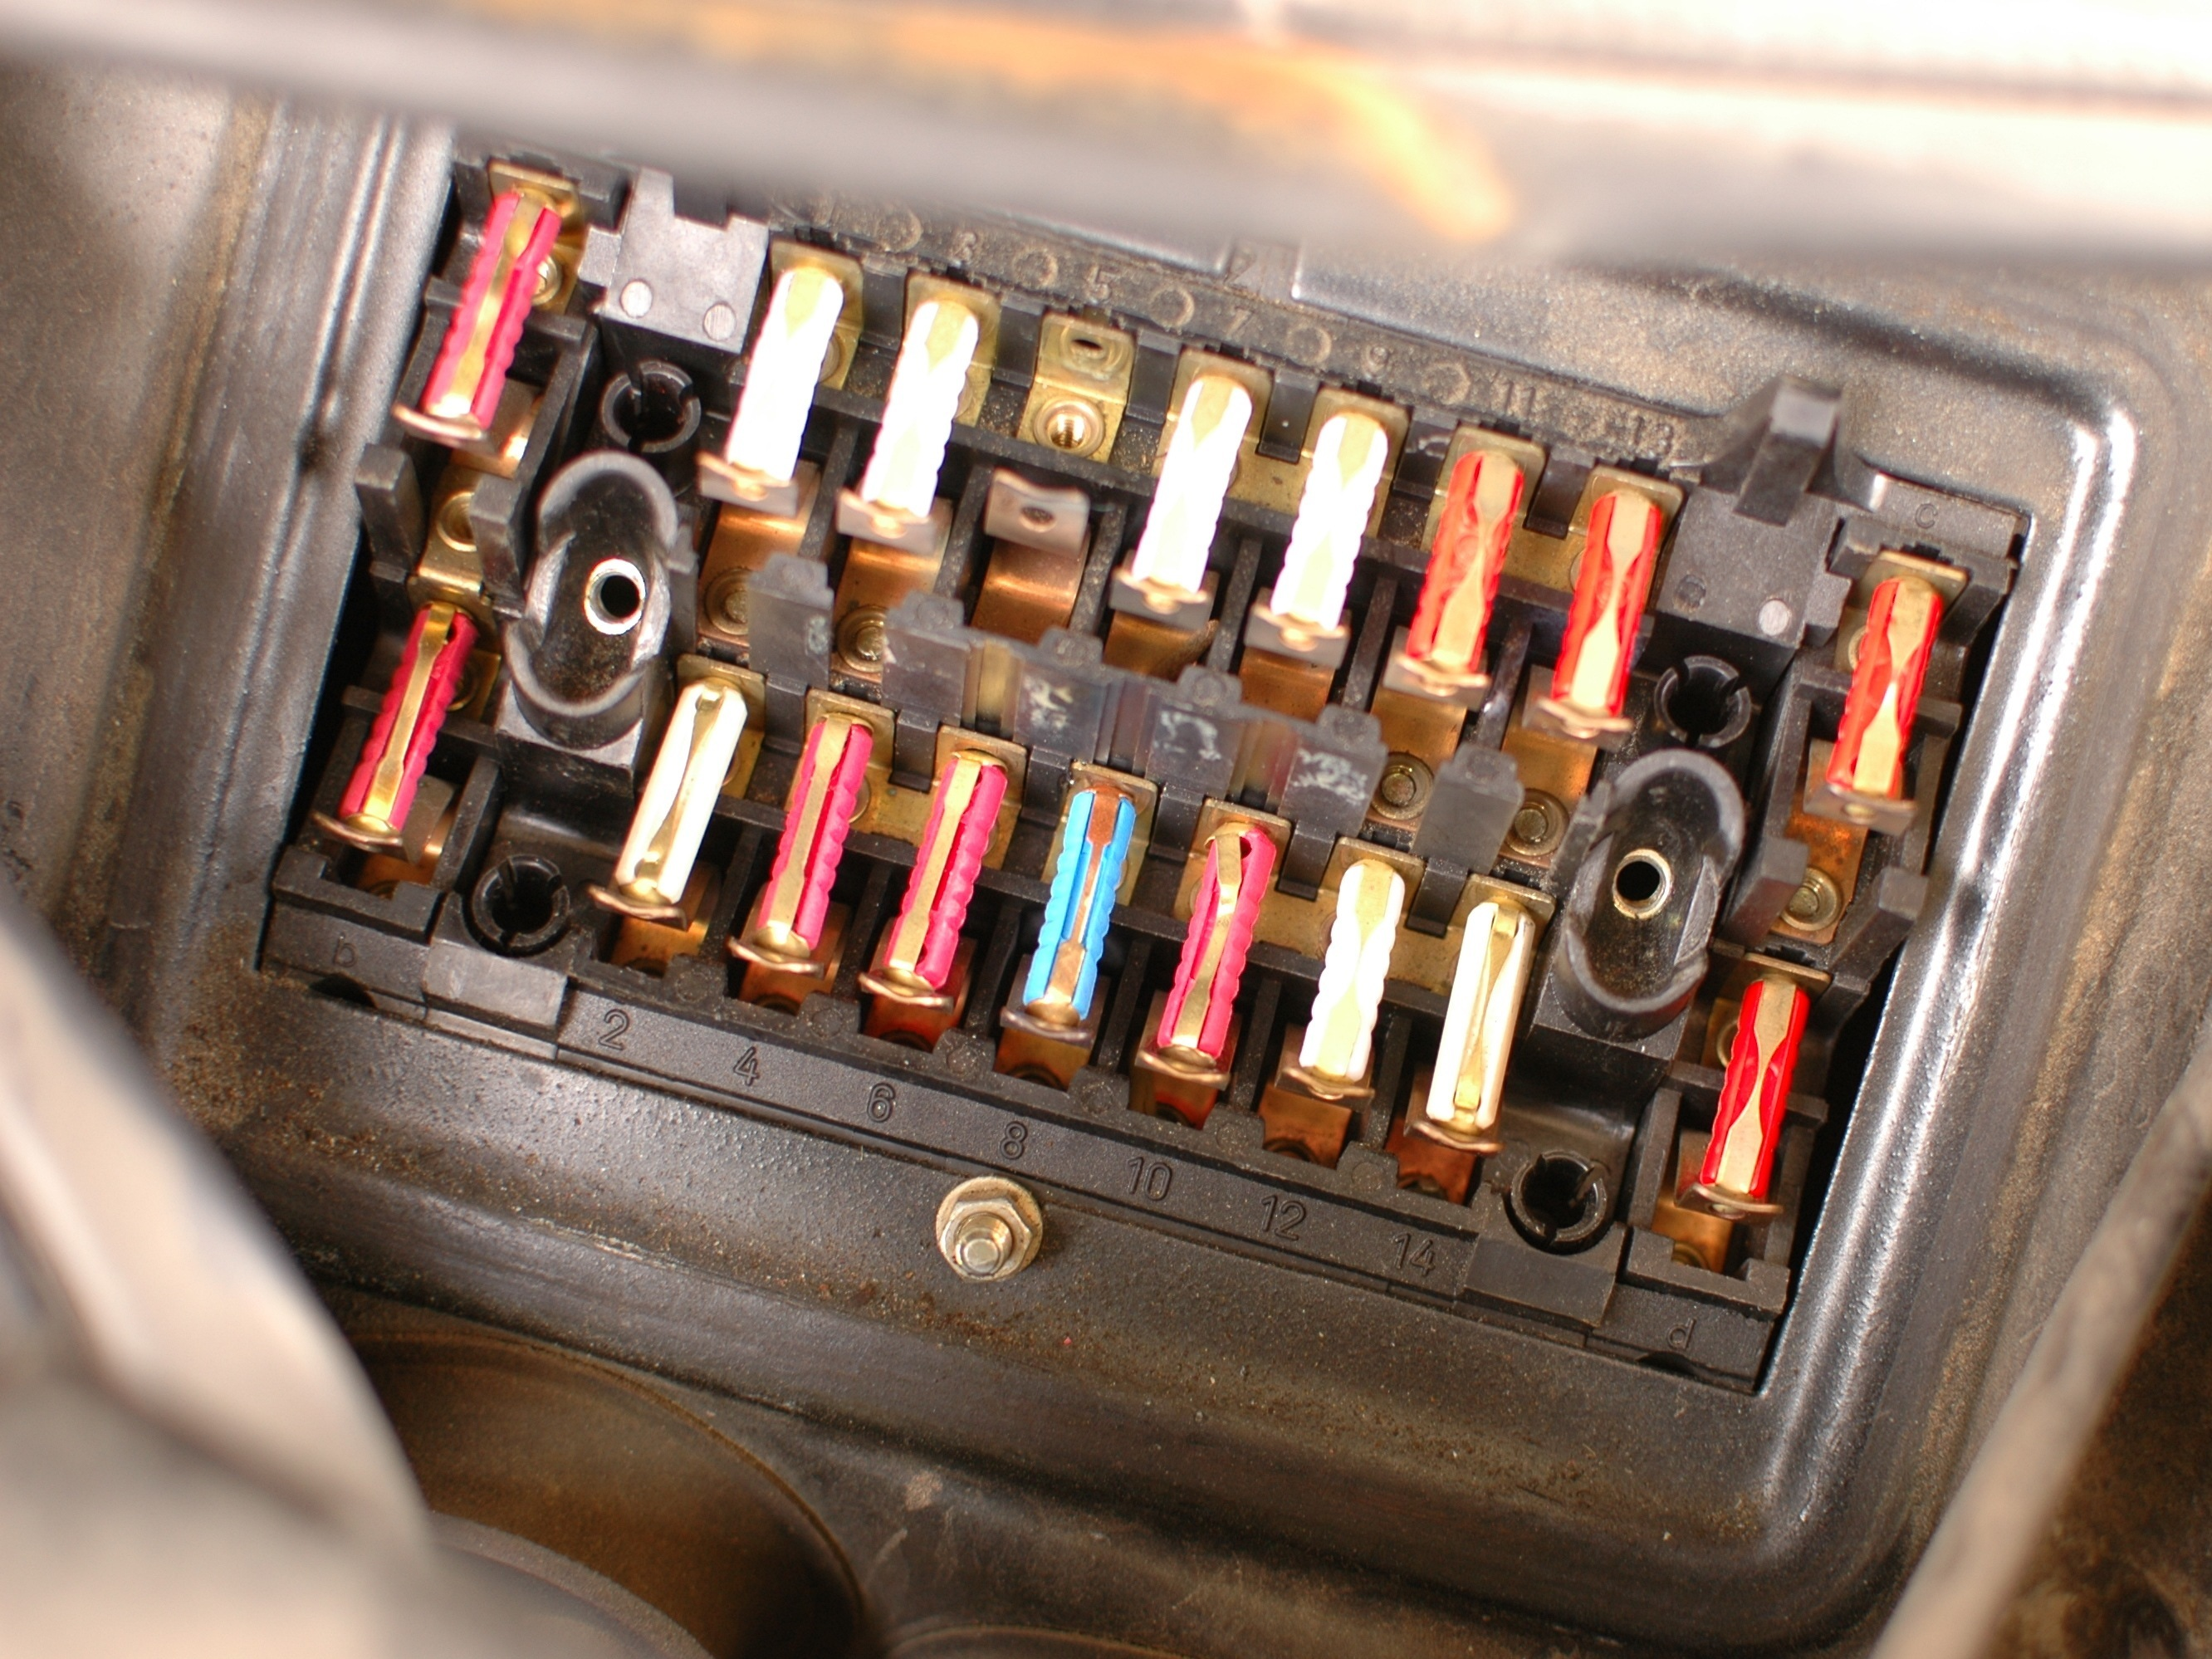 AfYAfmoCaMTVU2ap how to check mercedes w123 fuses ifixit 1978 Mercedes 450SEL at fashall.co